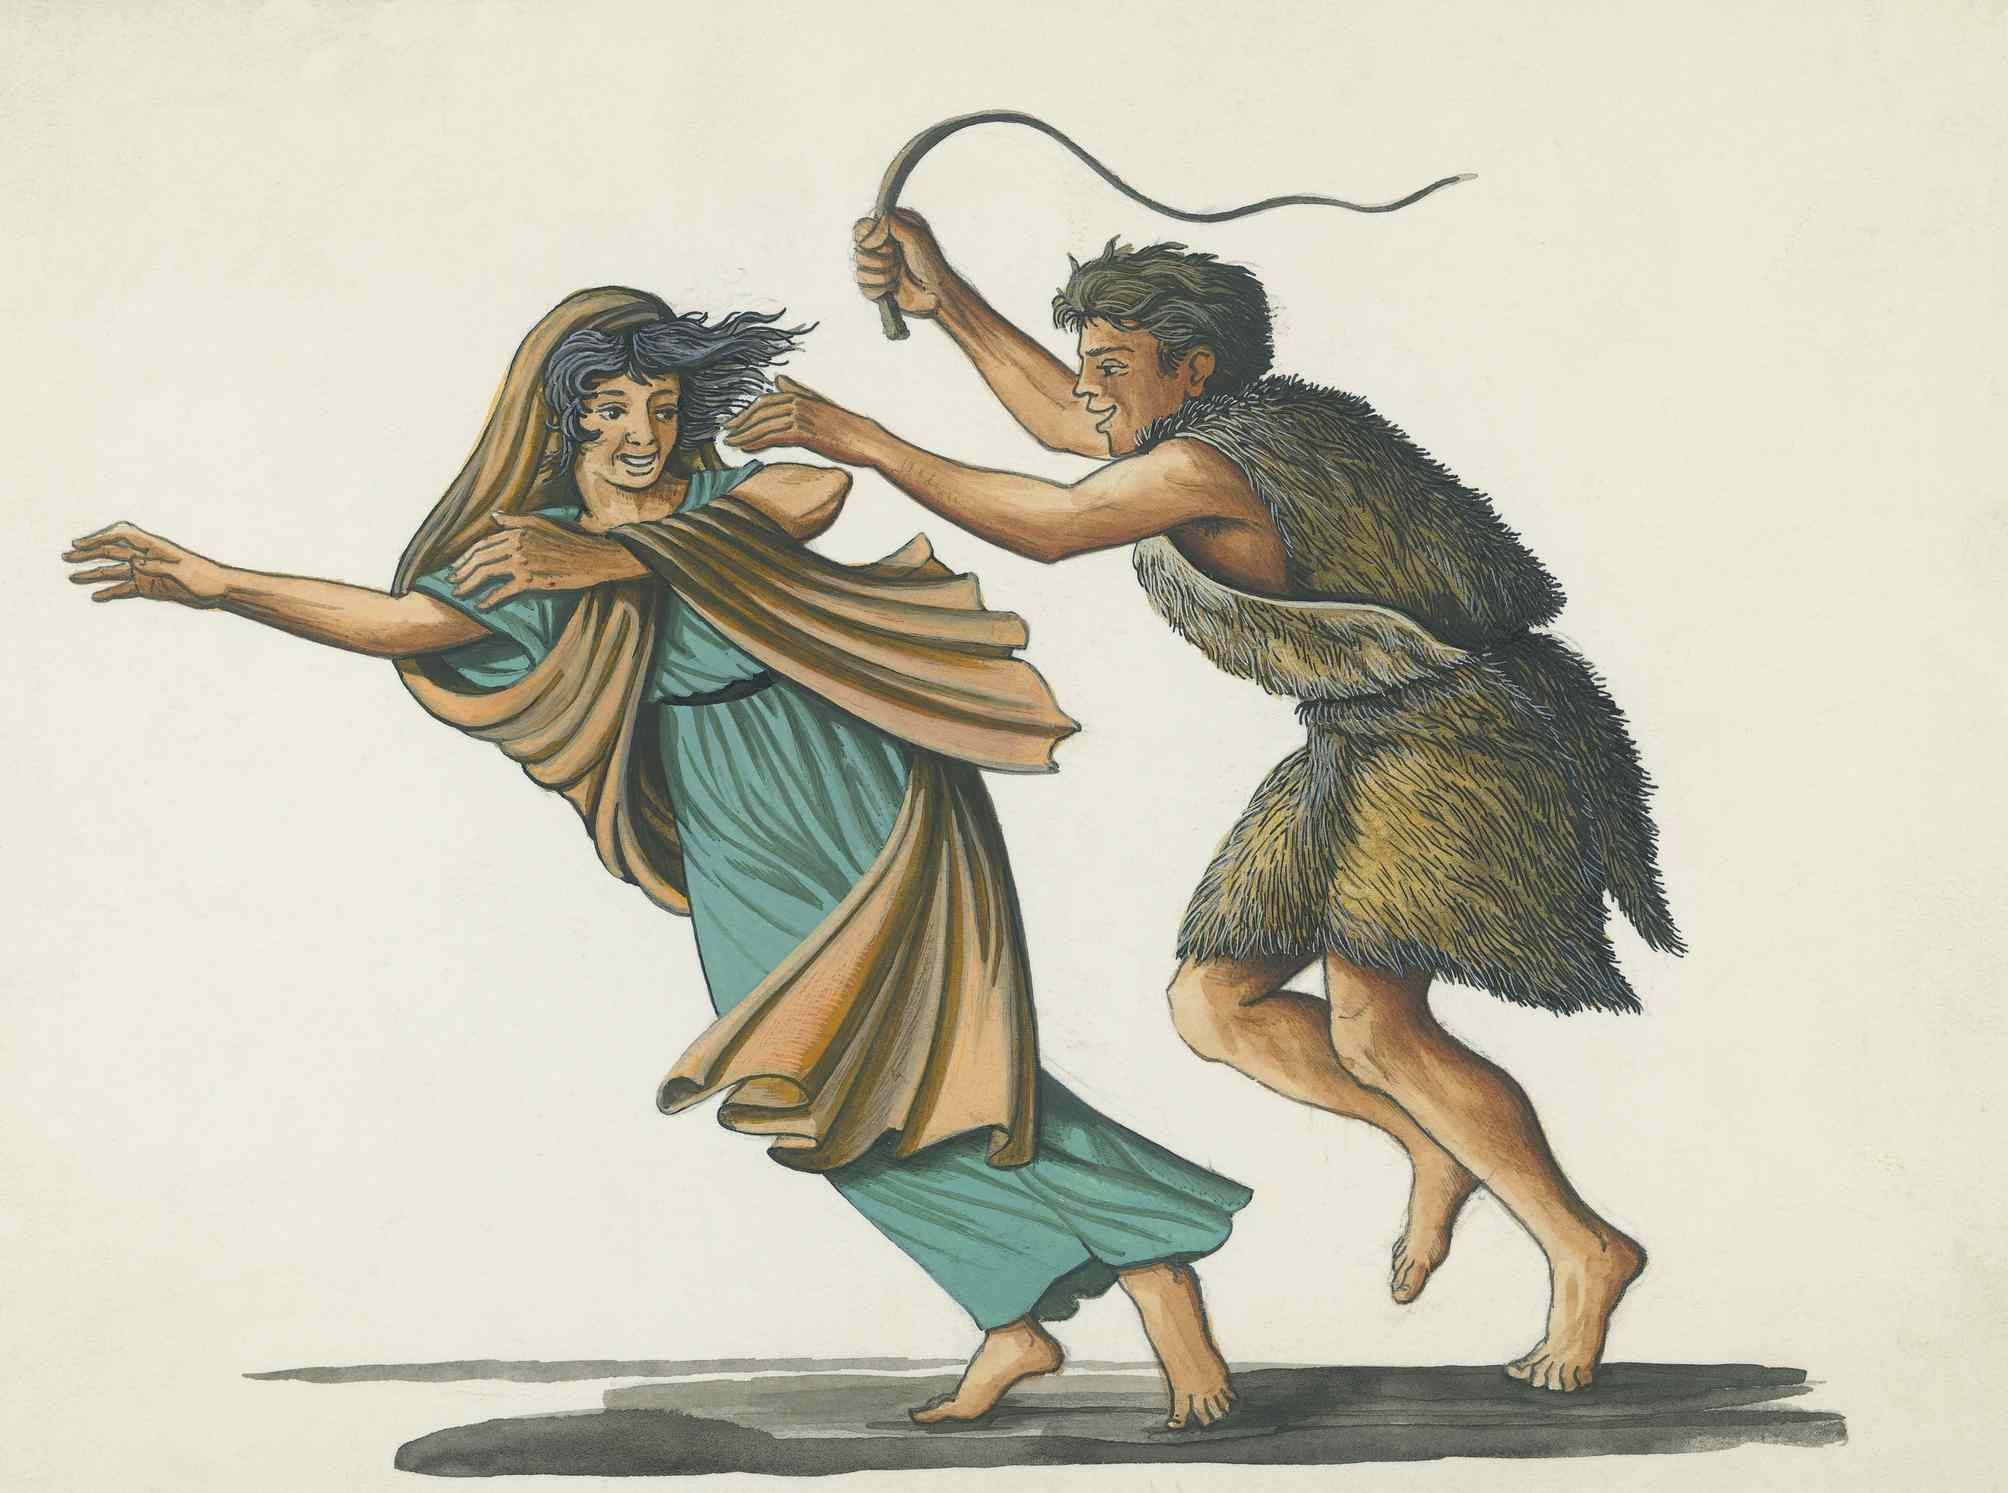 Drawing of the Lupercalia pastoral festival